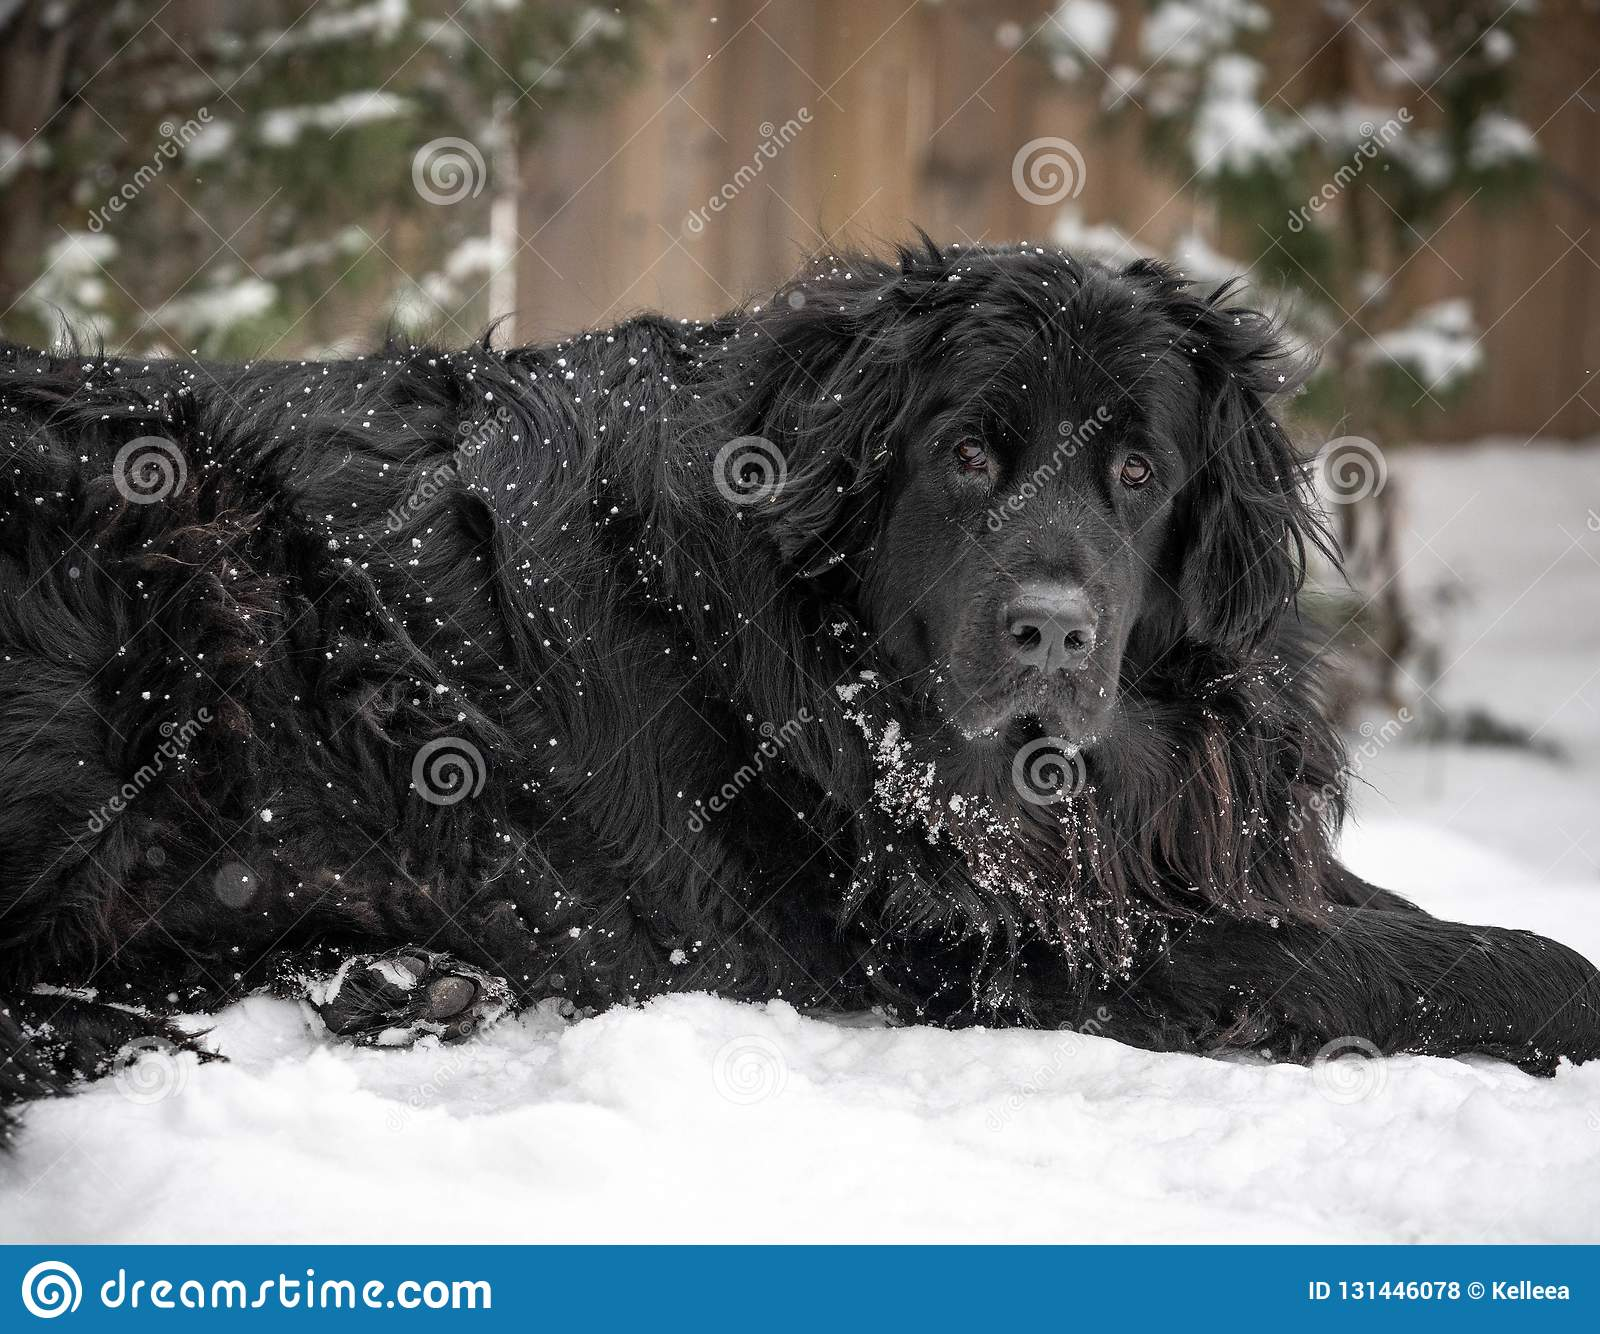 Black giant breed newfoundland dog laying in snow.